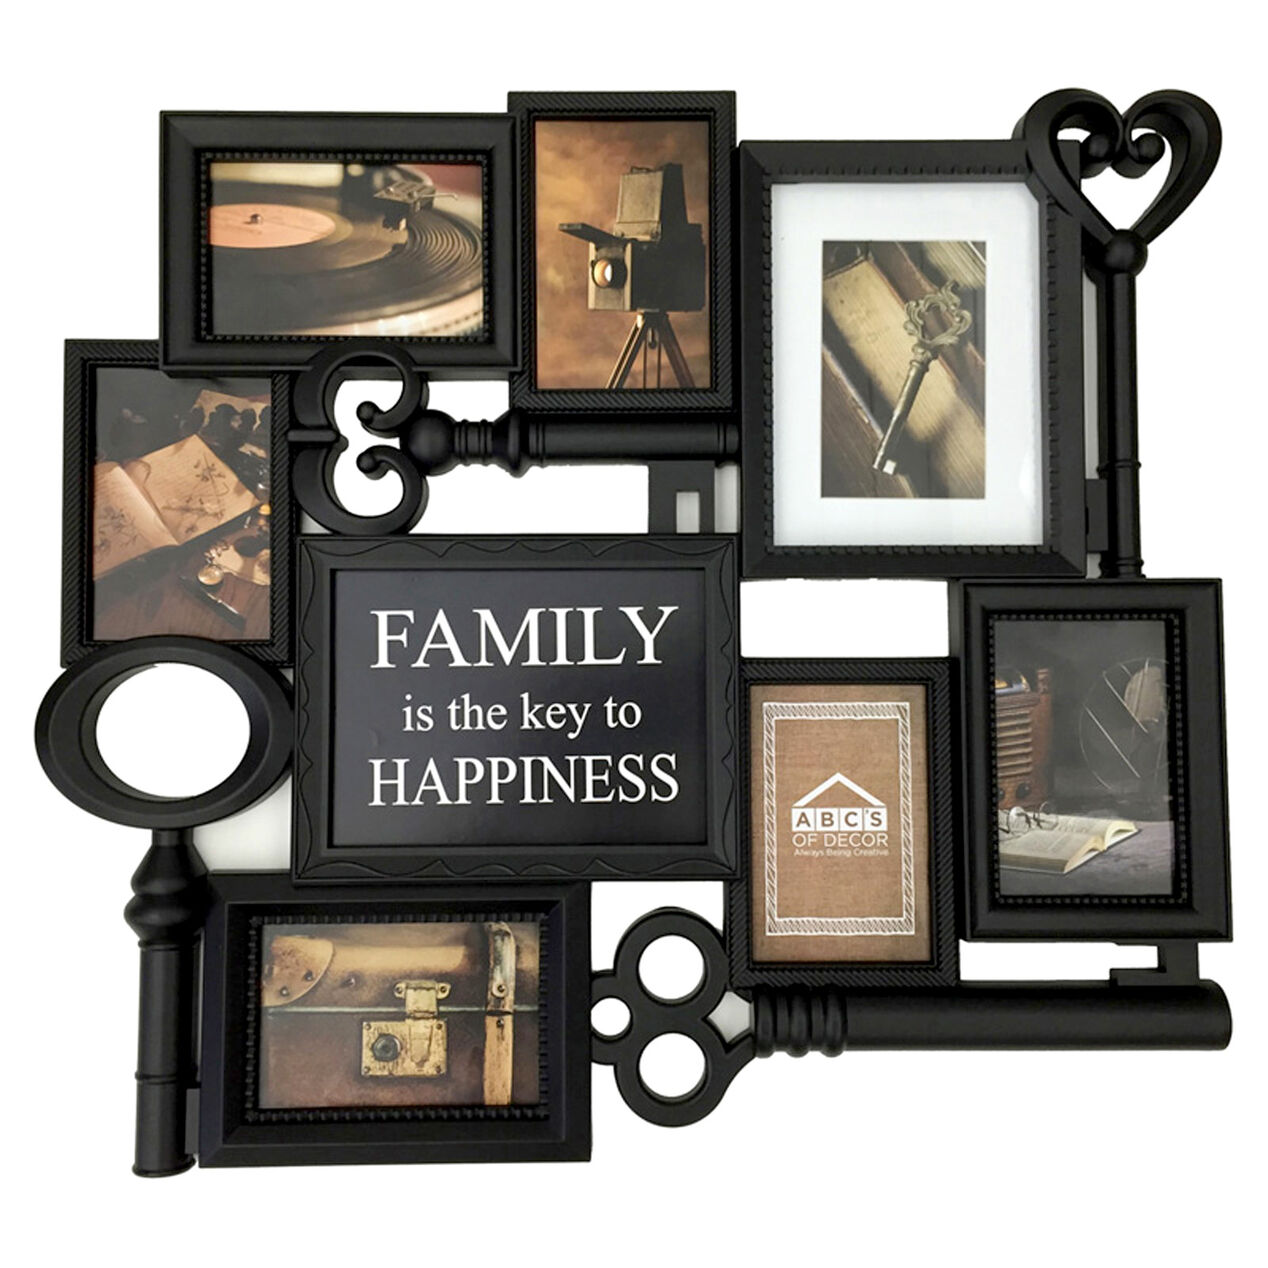 24 x 22 in family is key black collage frame